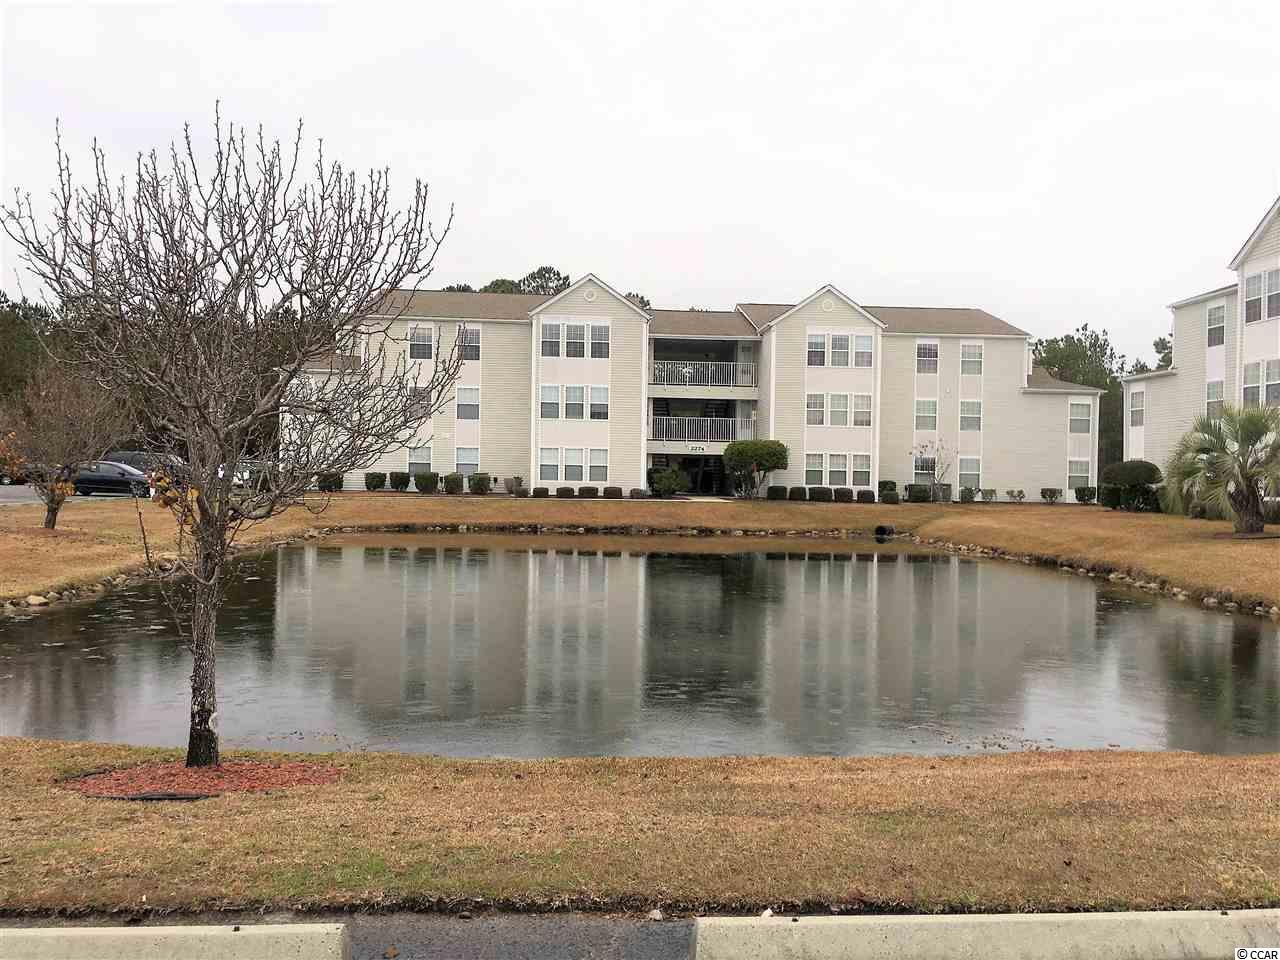 Condo / Townhome / Villa for Sale at 2274 Huntingdon 2274 Huntingdon Surfside Beach, South Carolina 29575 United States